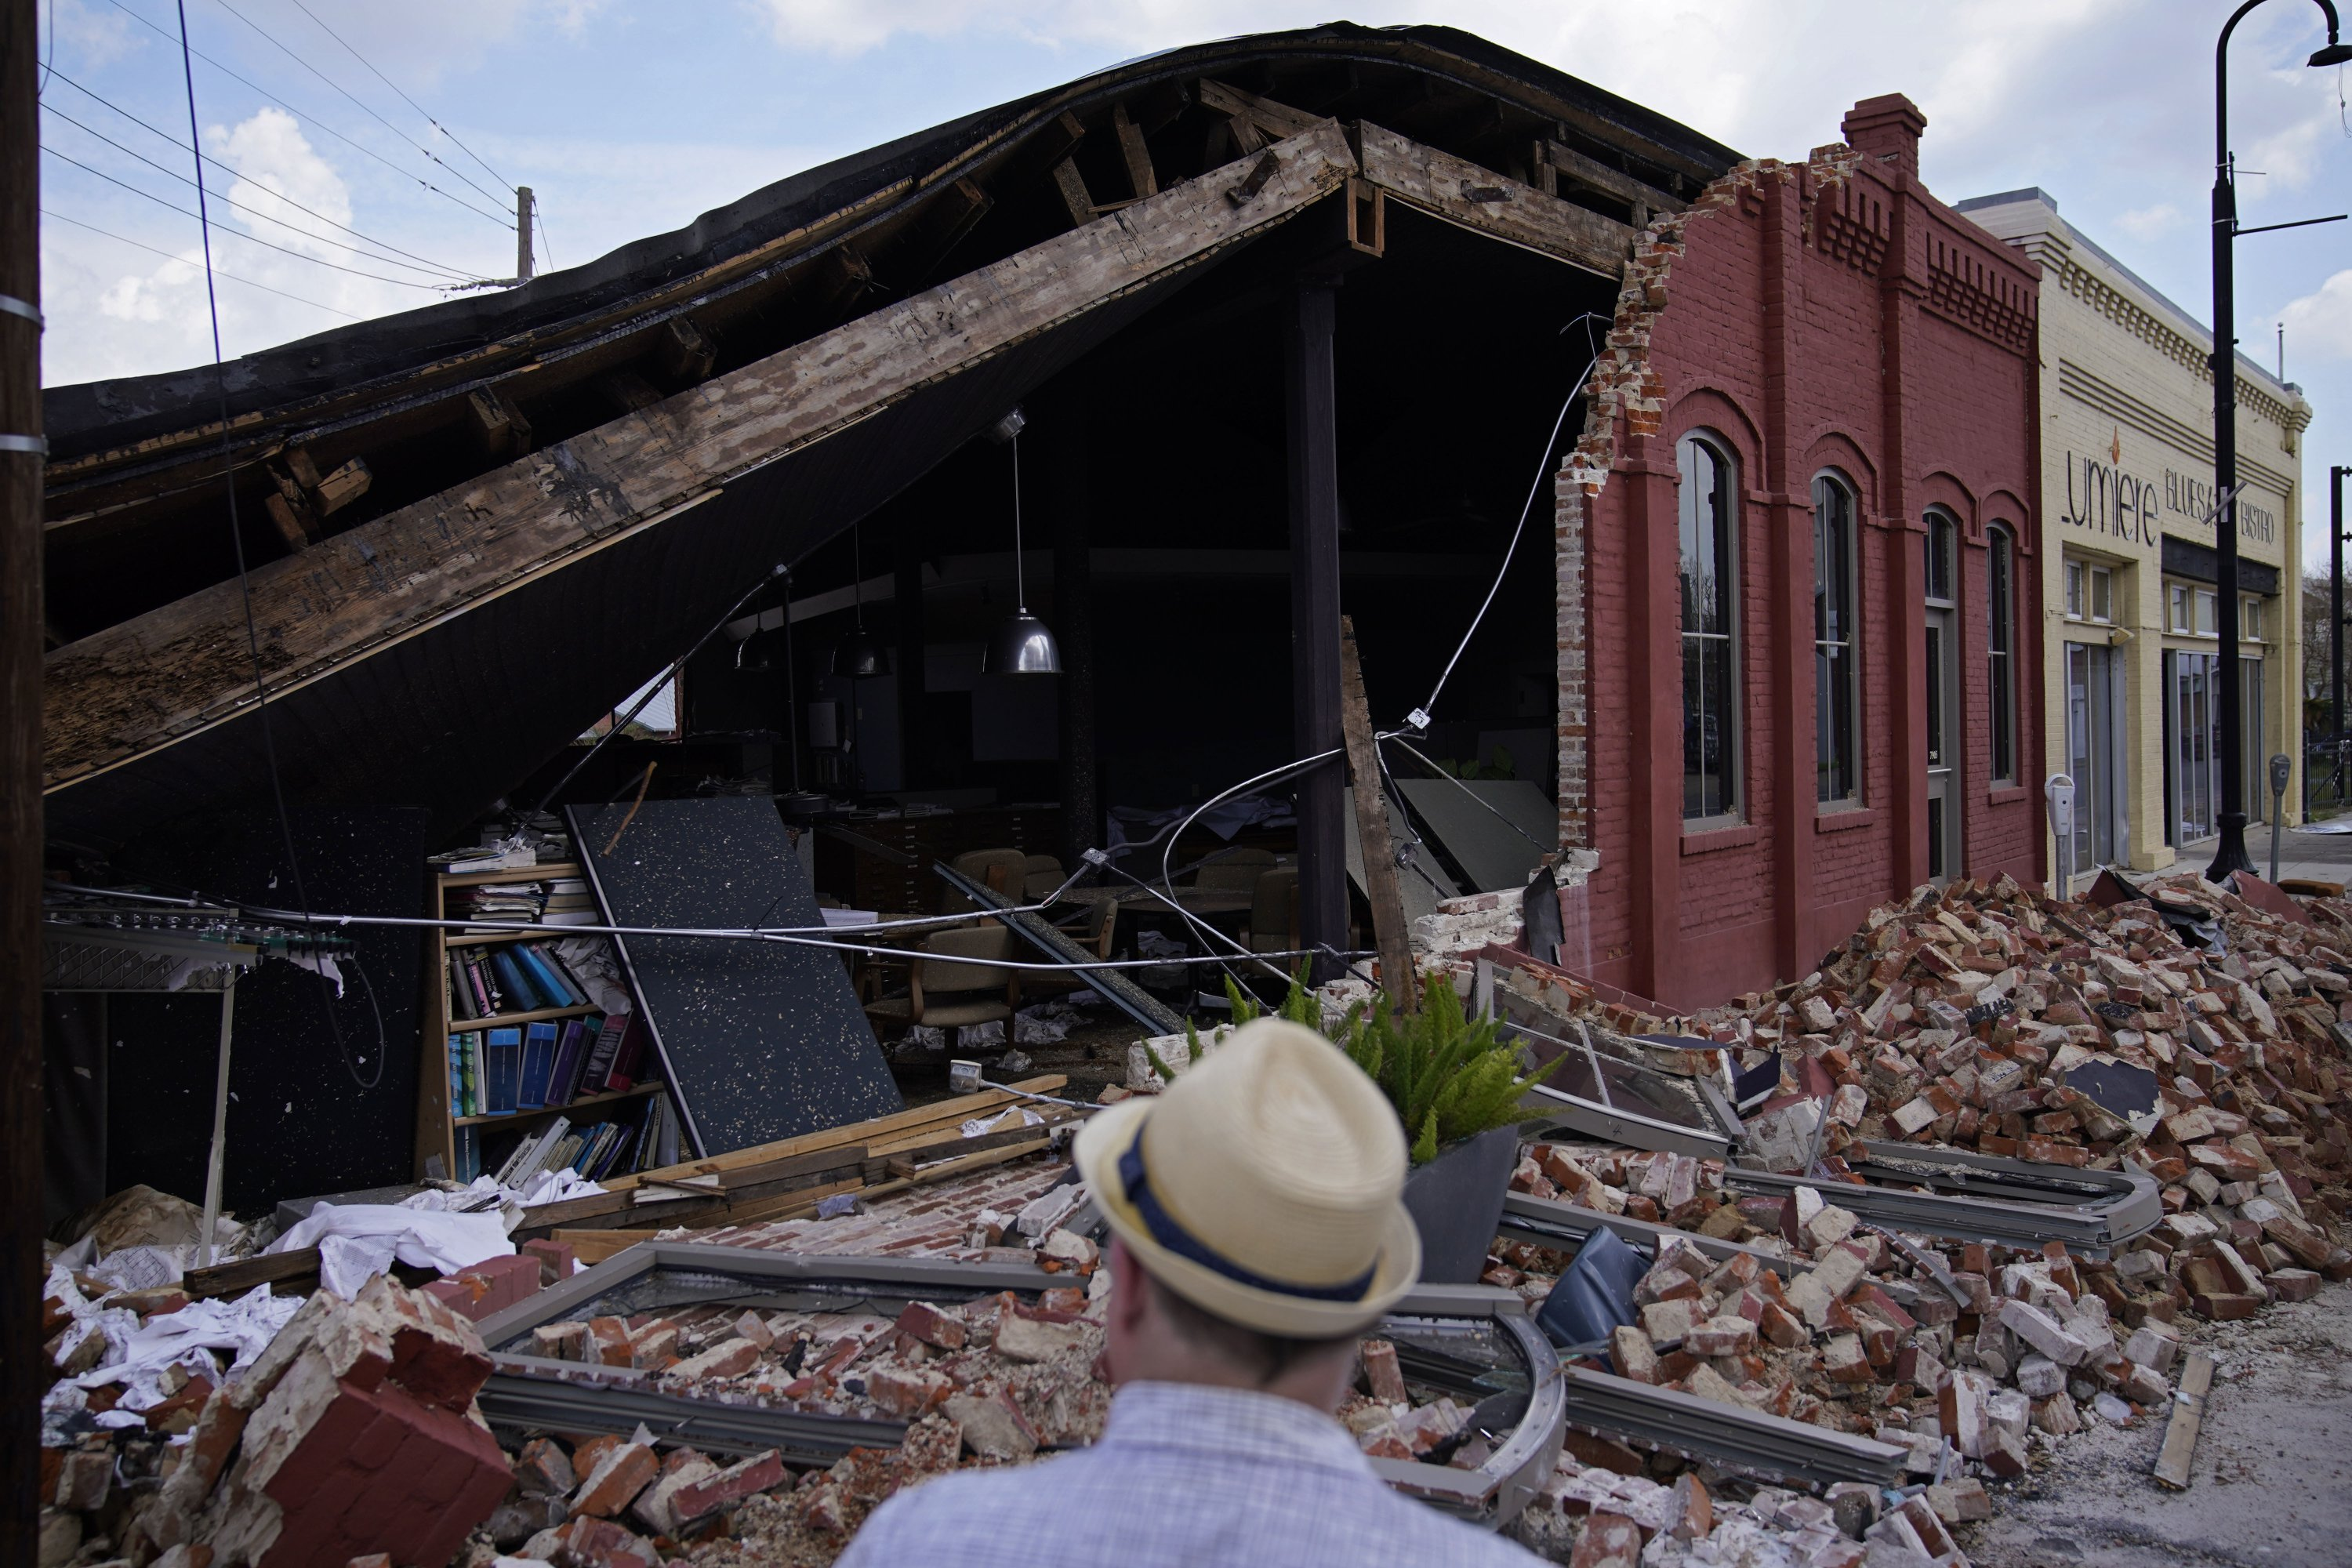 A man looks at a partially collapsed building in the aftermath of Hurricane Ida, Sept. 4, 2021, in Houma, Lousiana, U.S. (AP Photo)